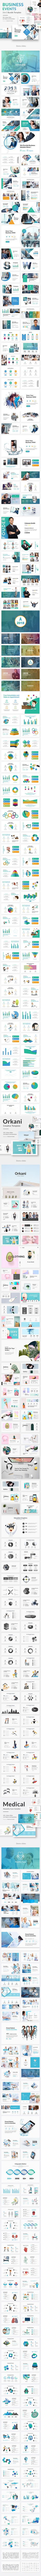 Business Event 3 in 1 Bundle Creative Keynote Template — Keynote KEY #drag drop #professional • Download ➝ https://graphicriver.net/item/business-event-3-in-1-bundle-creative-keynote-template/21715417?ref=pxcr